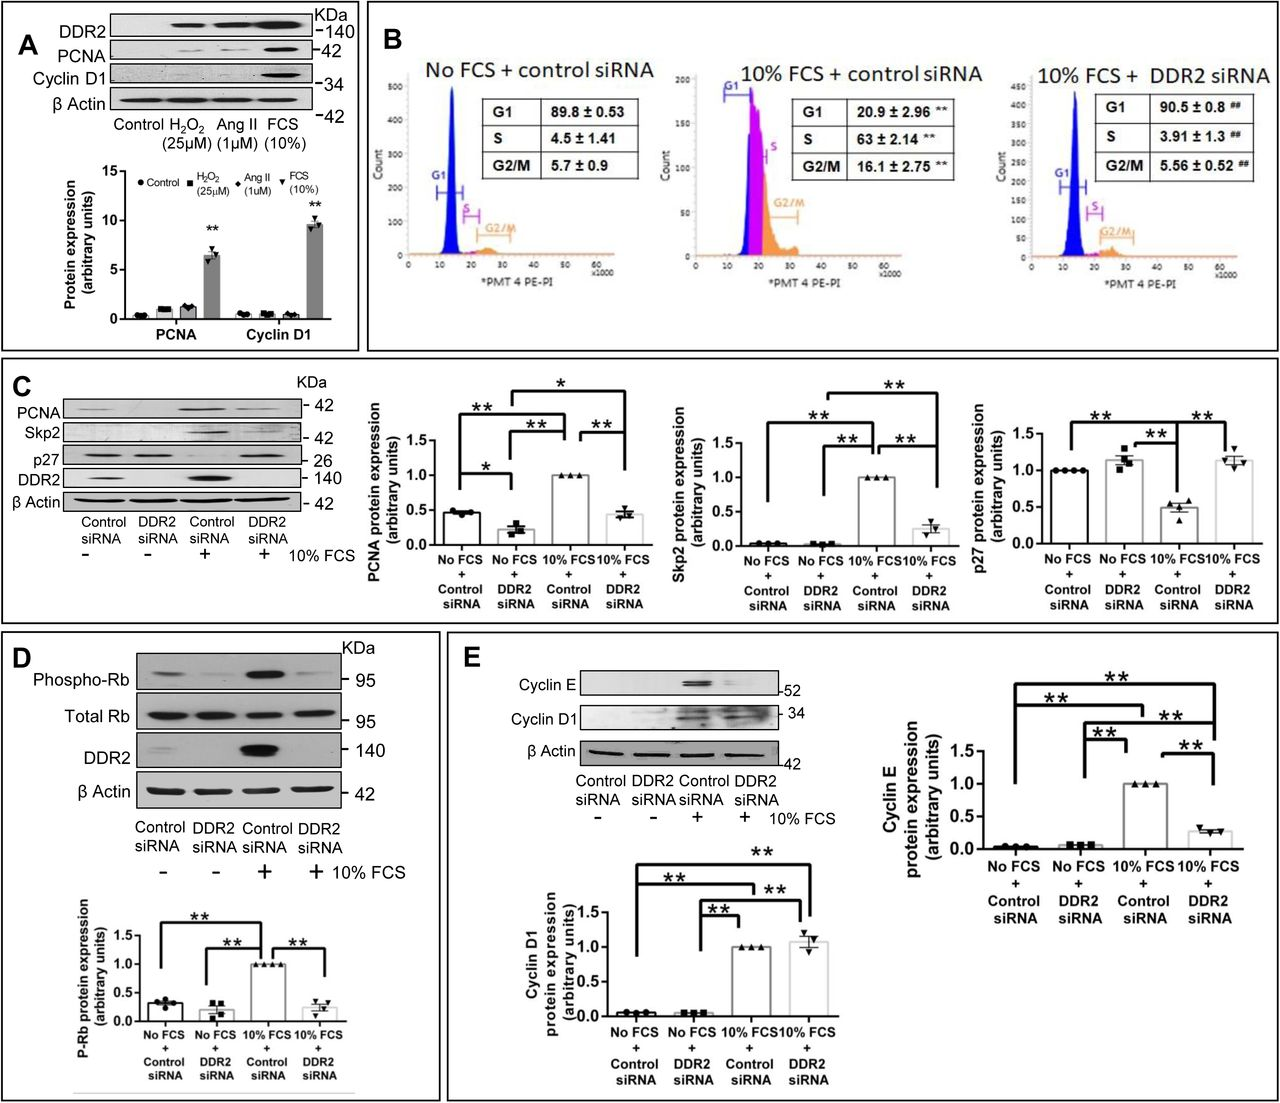 DDR2 knockdown in mitogen-stimulated cardiac fibroblasts inhibits G1-S transition. ( A) Sub-confluent cultures of cardiac fibroblasts were serum deprived for 24h prior to treatment with Control (fresh M199 medium treatment), 25μM H 2 O 2 , Ang II (1μM) and 10% Fetal Calf Serum. Post treatment, cells were collected at 8h and analysed by western blotting for expression levels of PCNA and cyclin D1, with β-actin as loading control. Significance was determined by Student's t test, (each treatment vs Control) **p